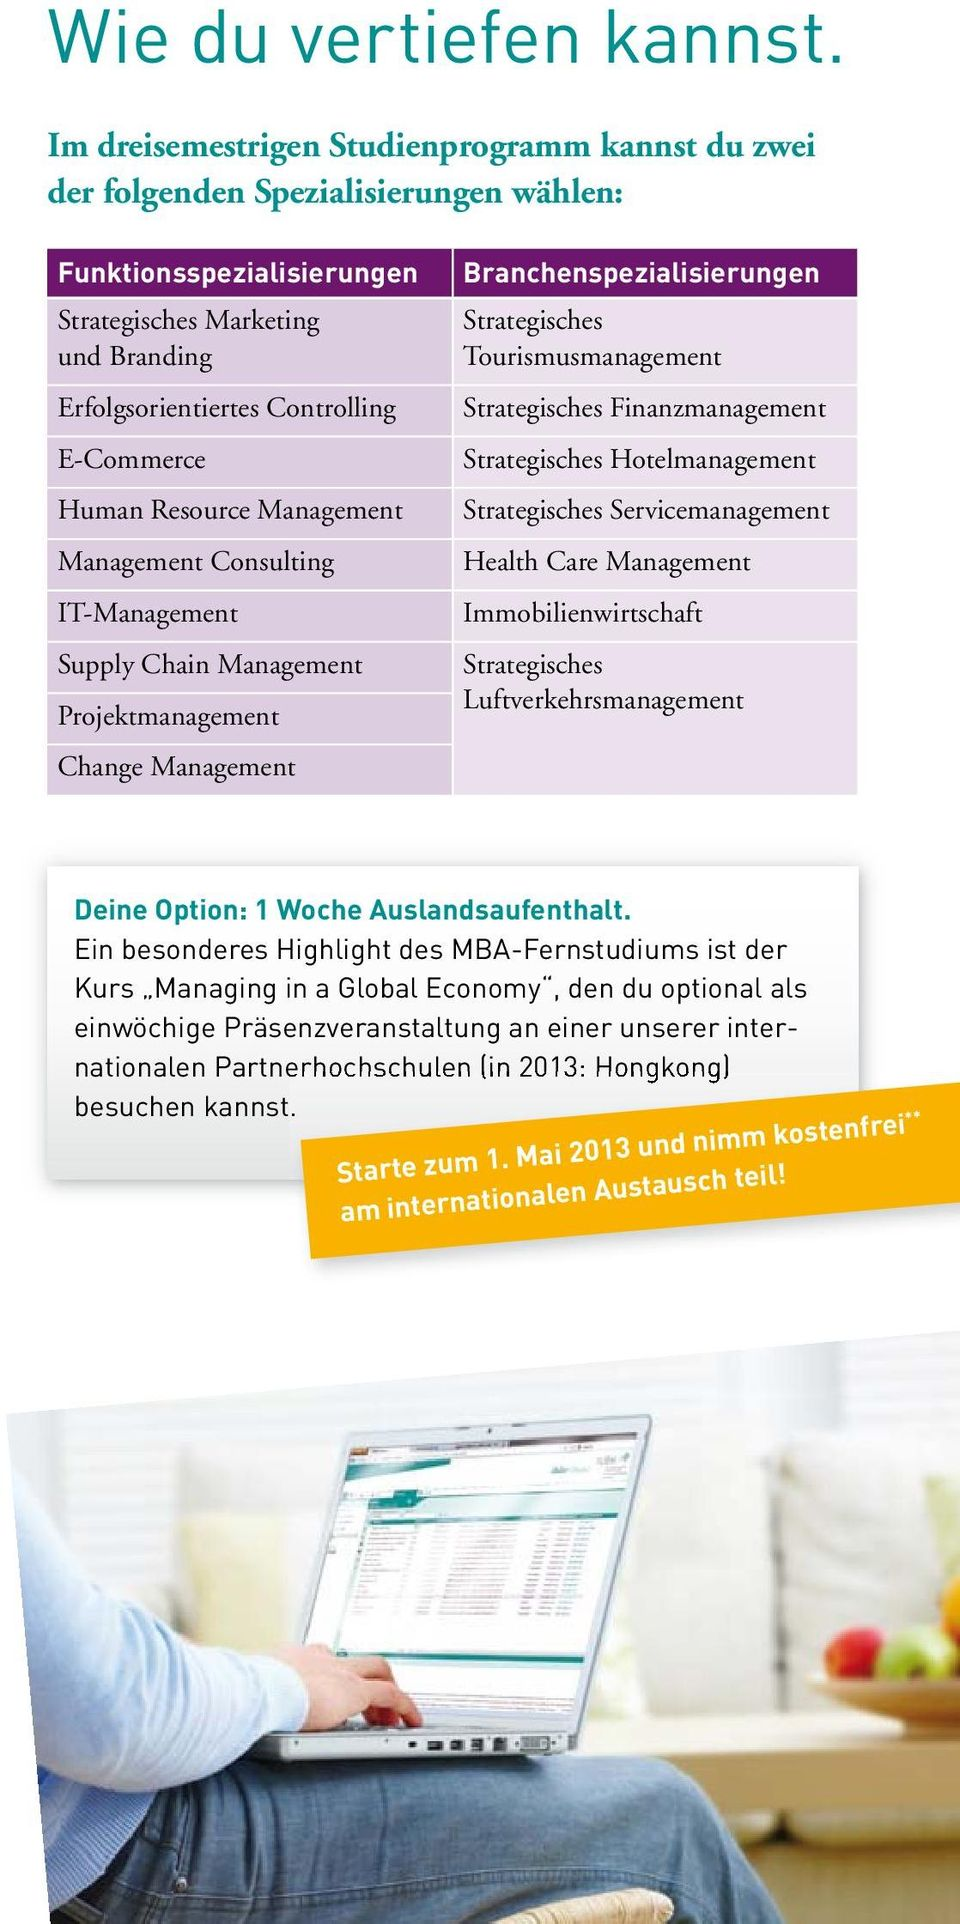 Controlling E-Commerce Human Resource Management Management Consulting IT-Management Supply Chain Management Projektmanagement Change Management Strategisches Tourismusmanagement Strategisches